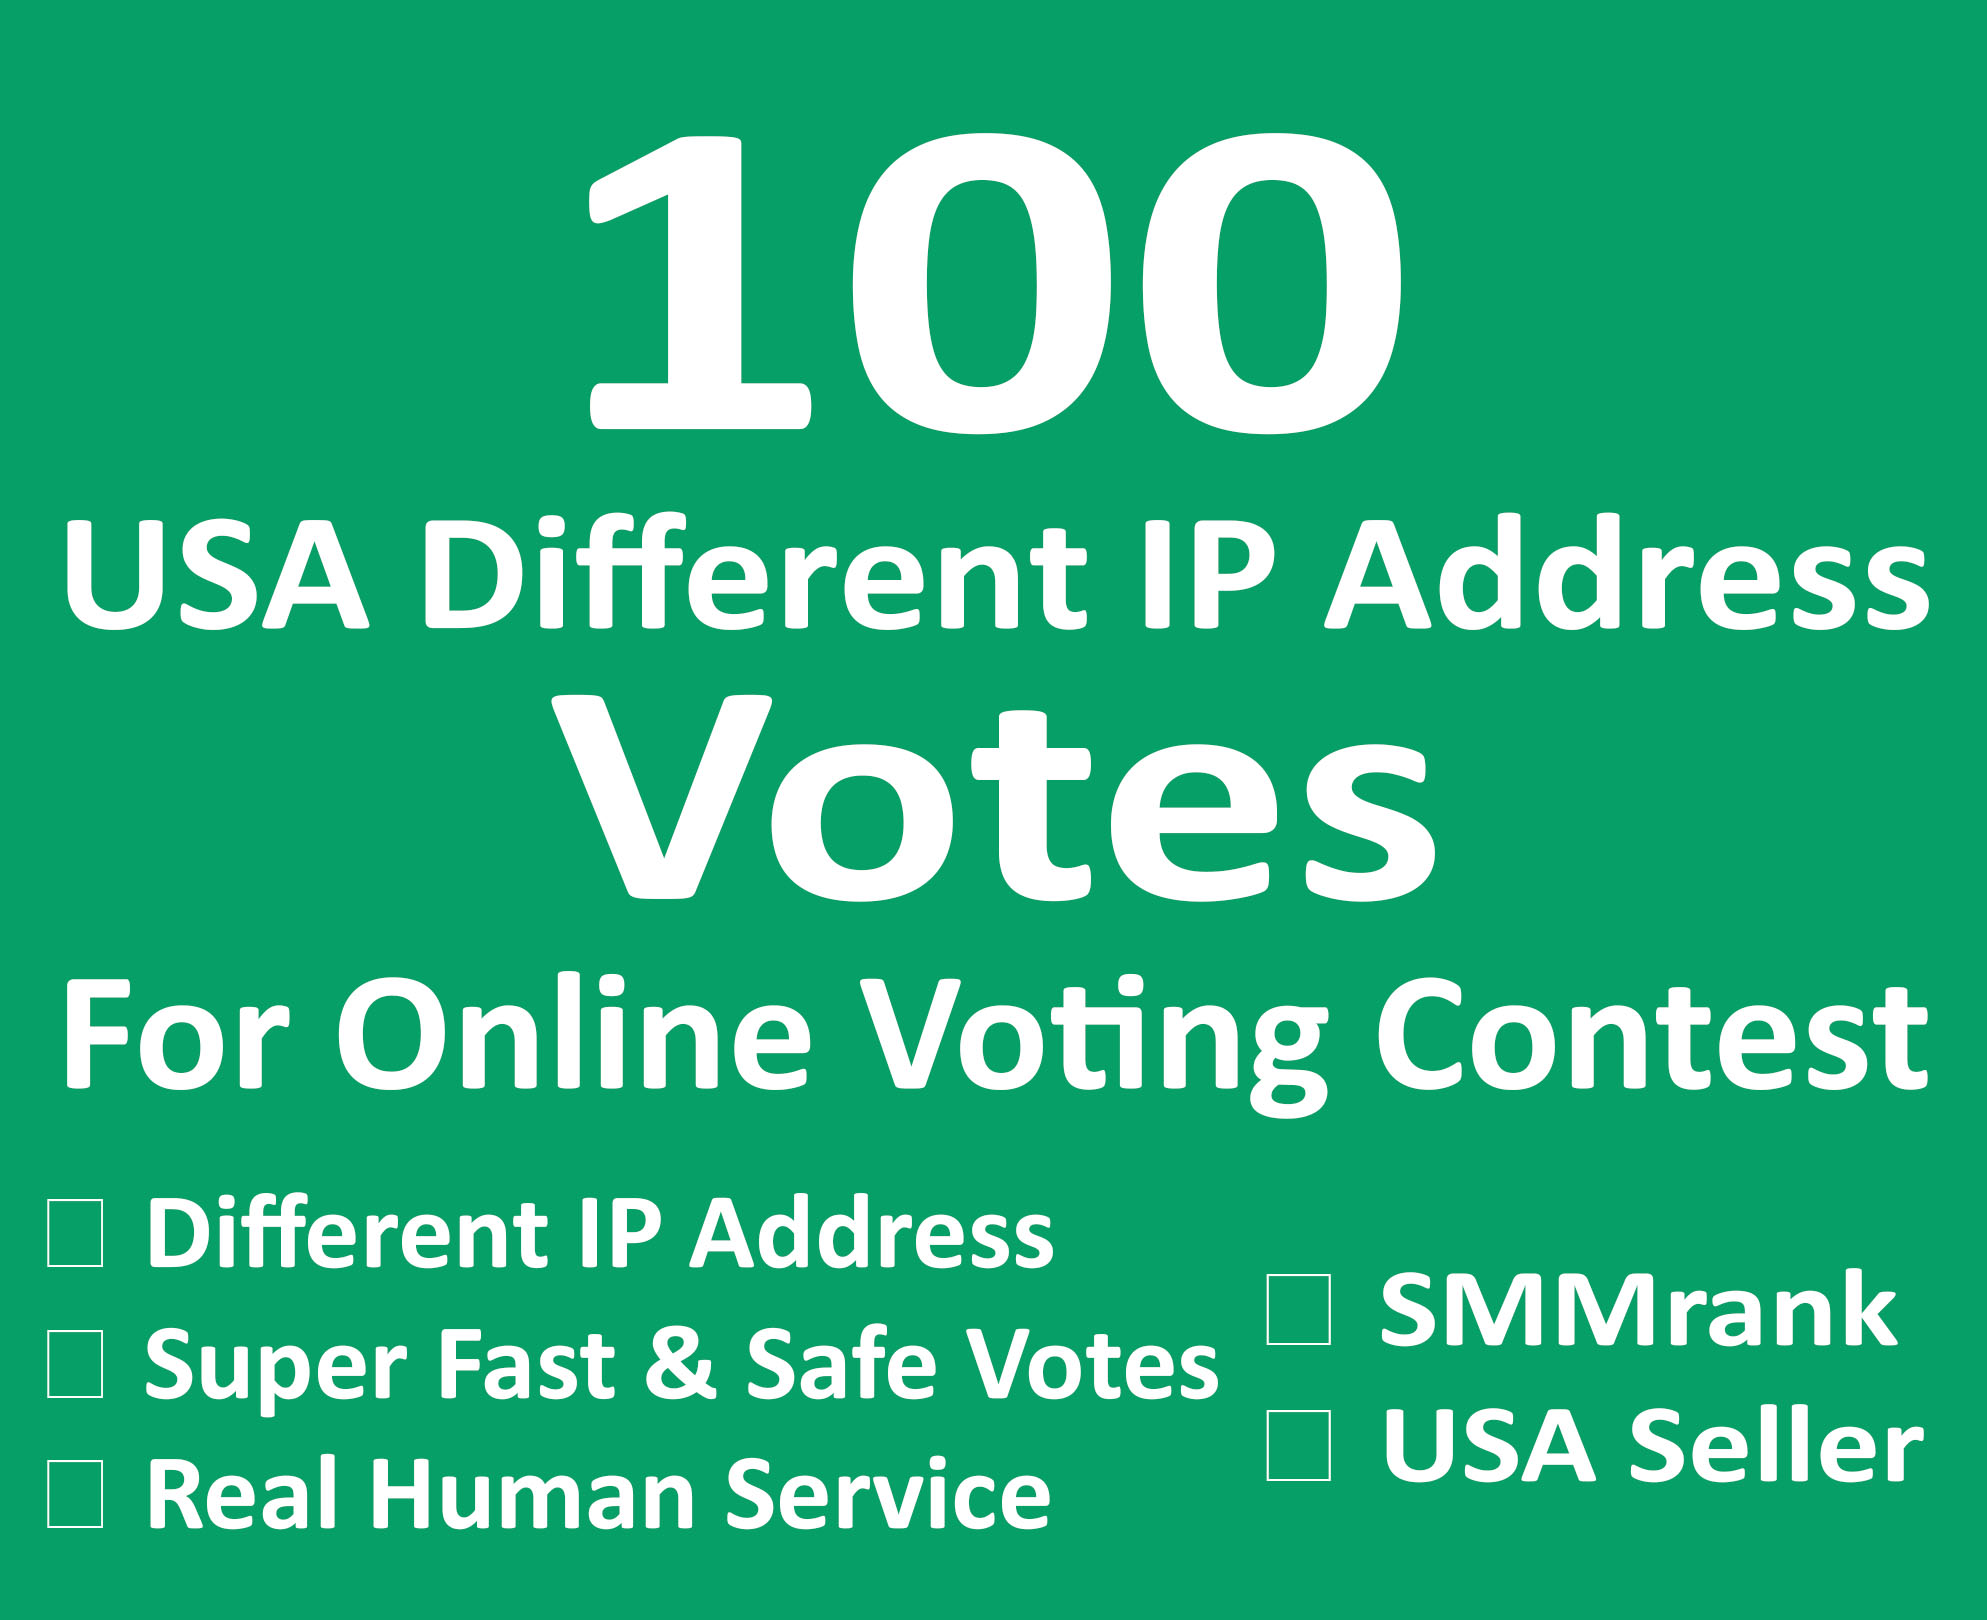 Instant 100+ USA Different IP Votes For Any Online Voting Contest